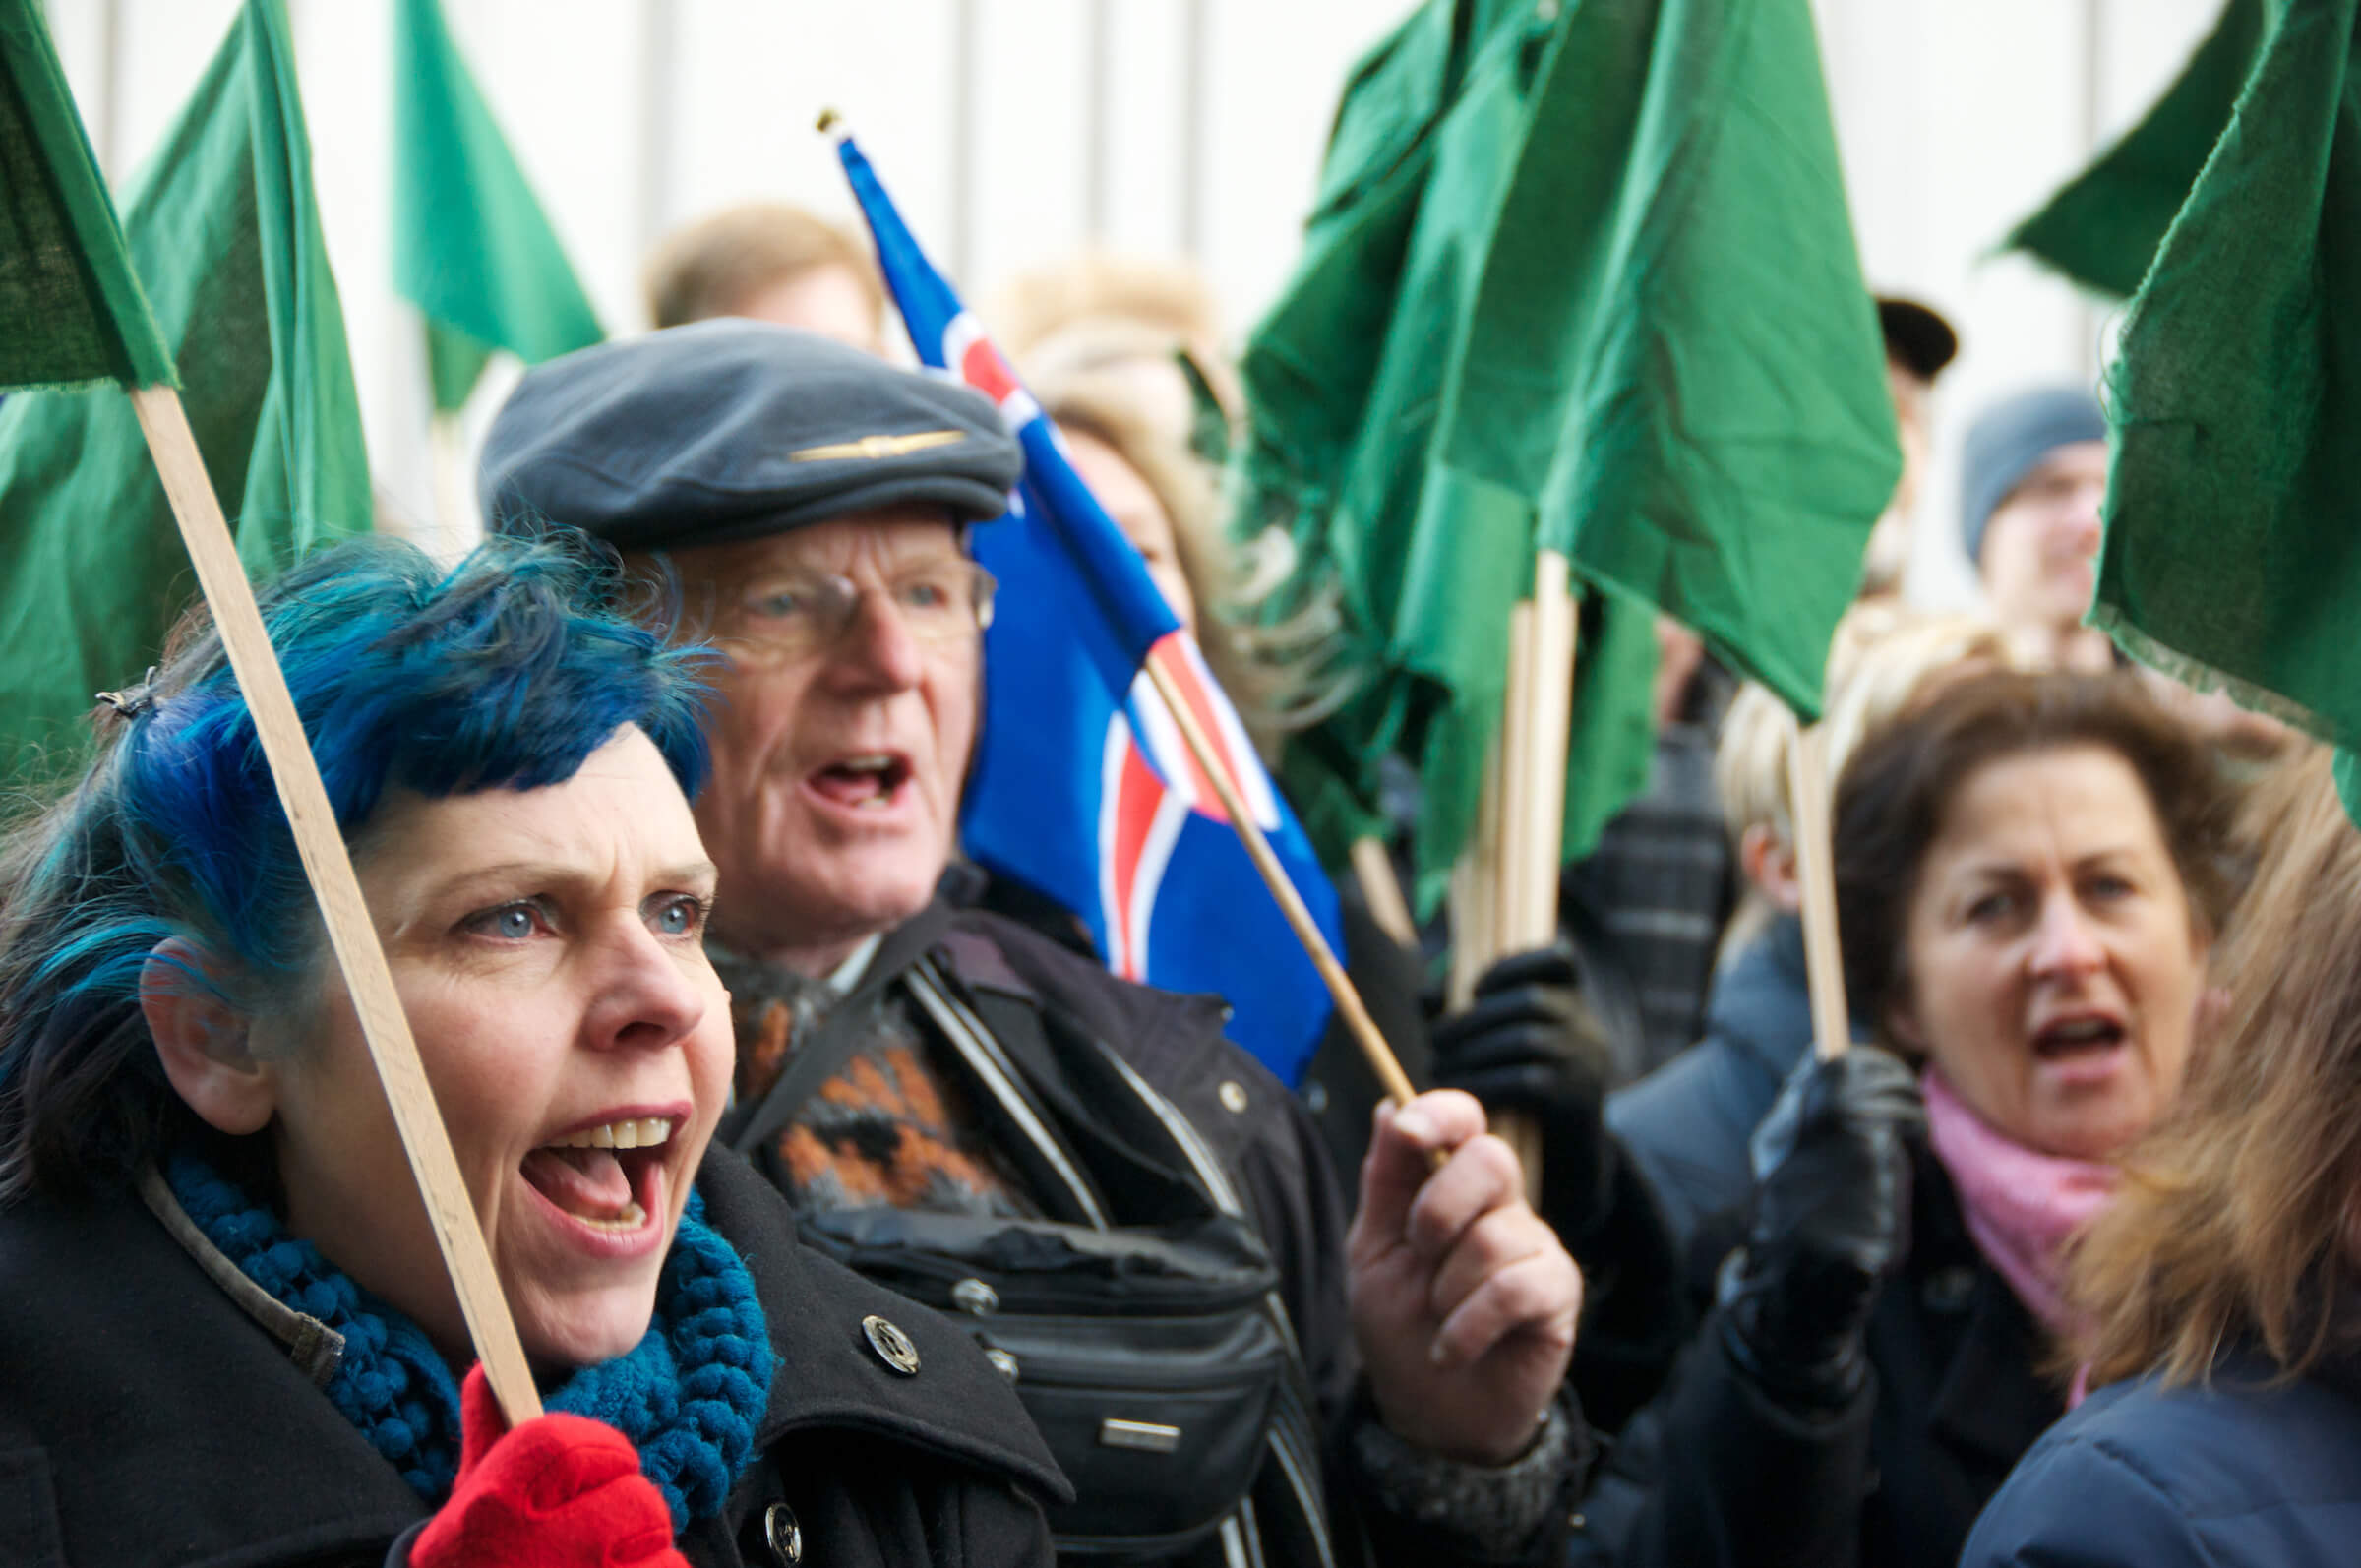 Post-crisis Iceland: we have been living a lie but we were able to break it